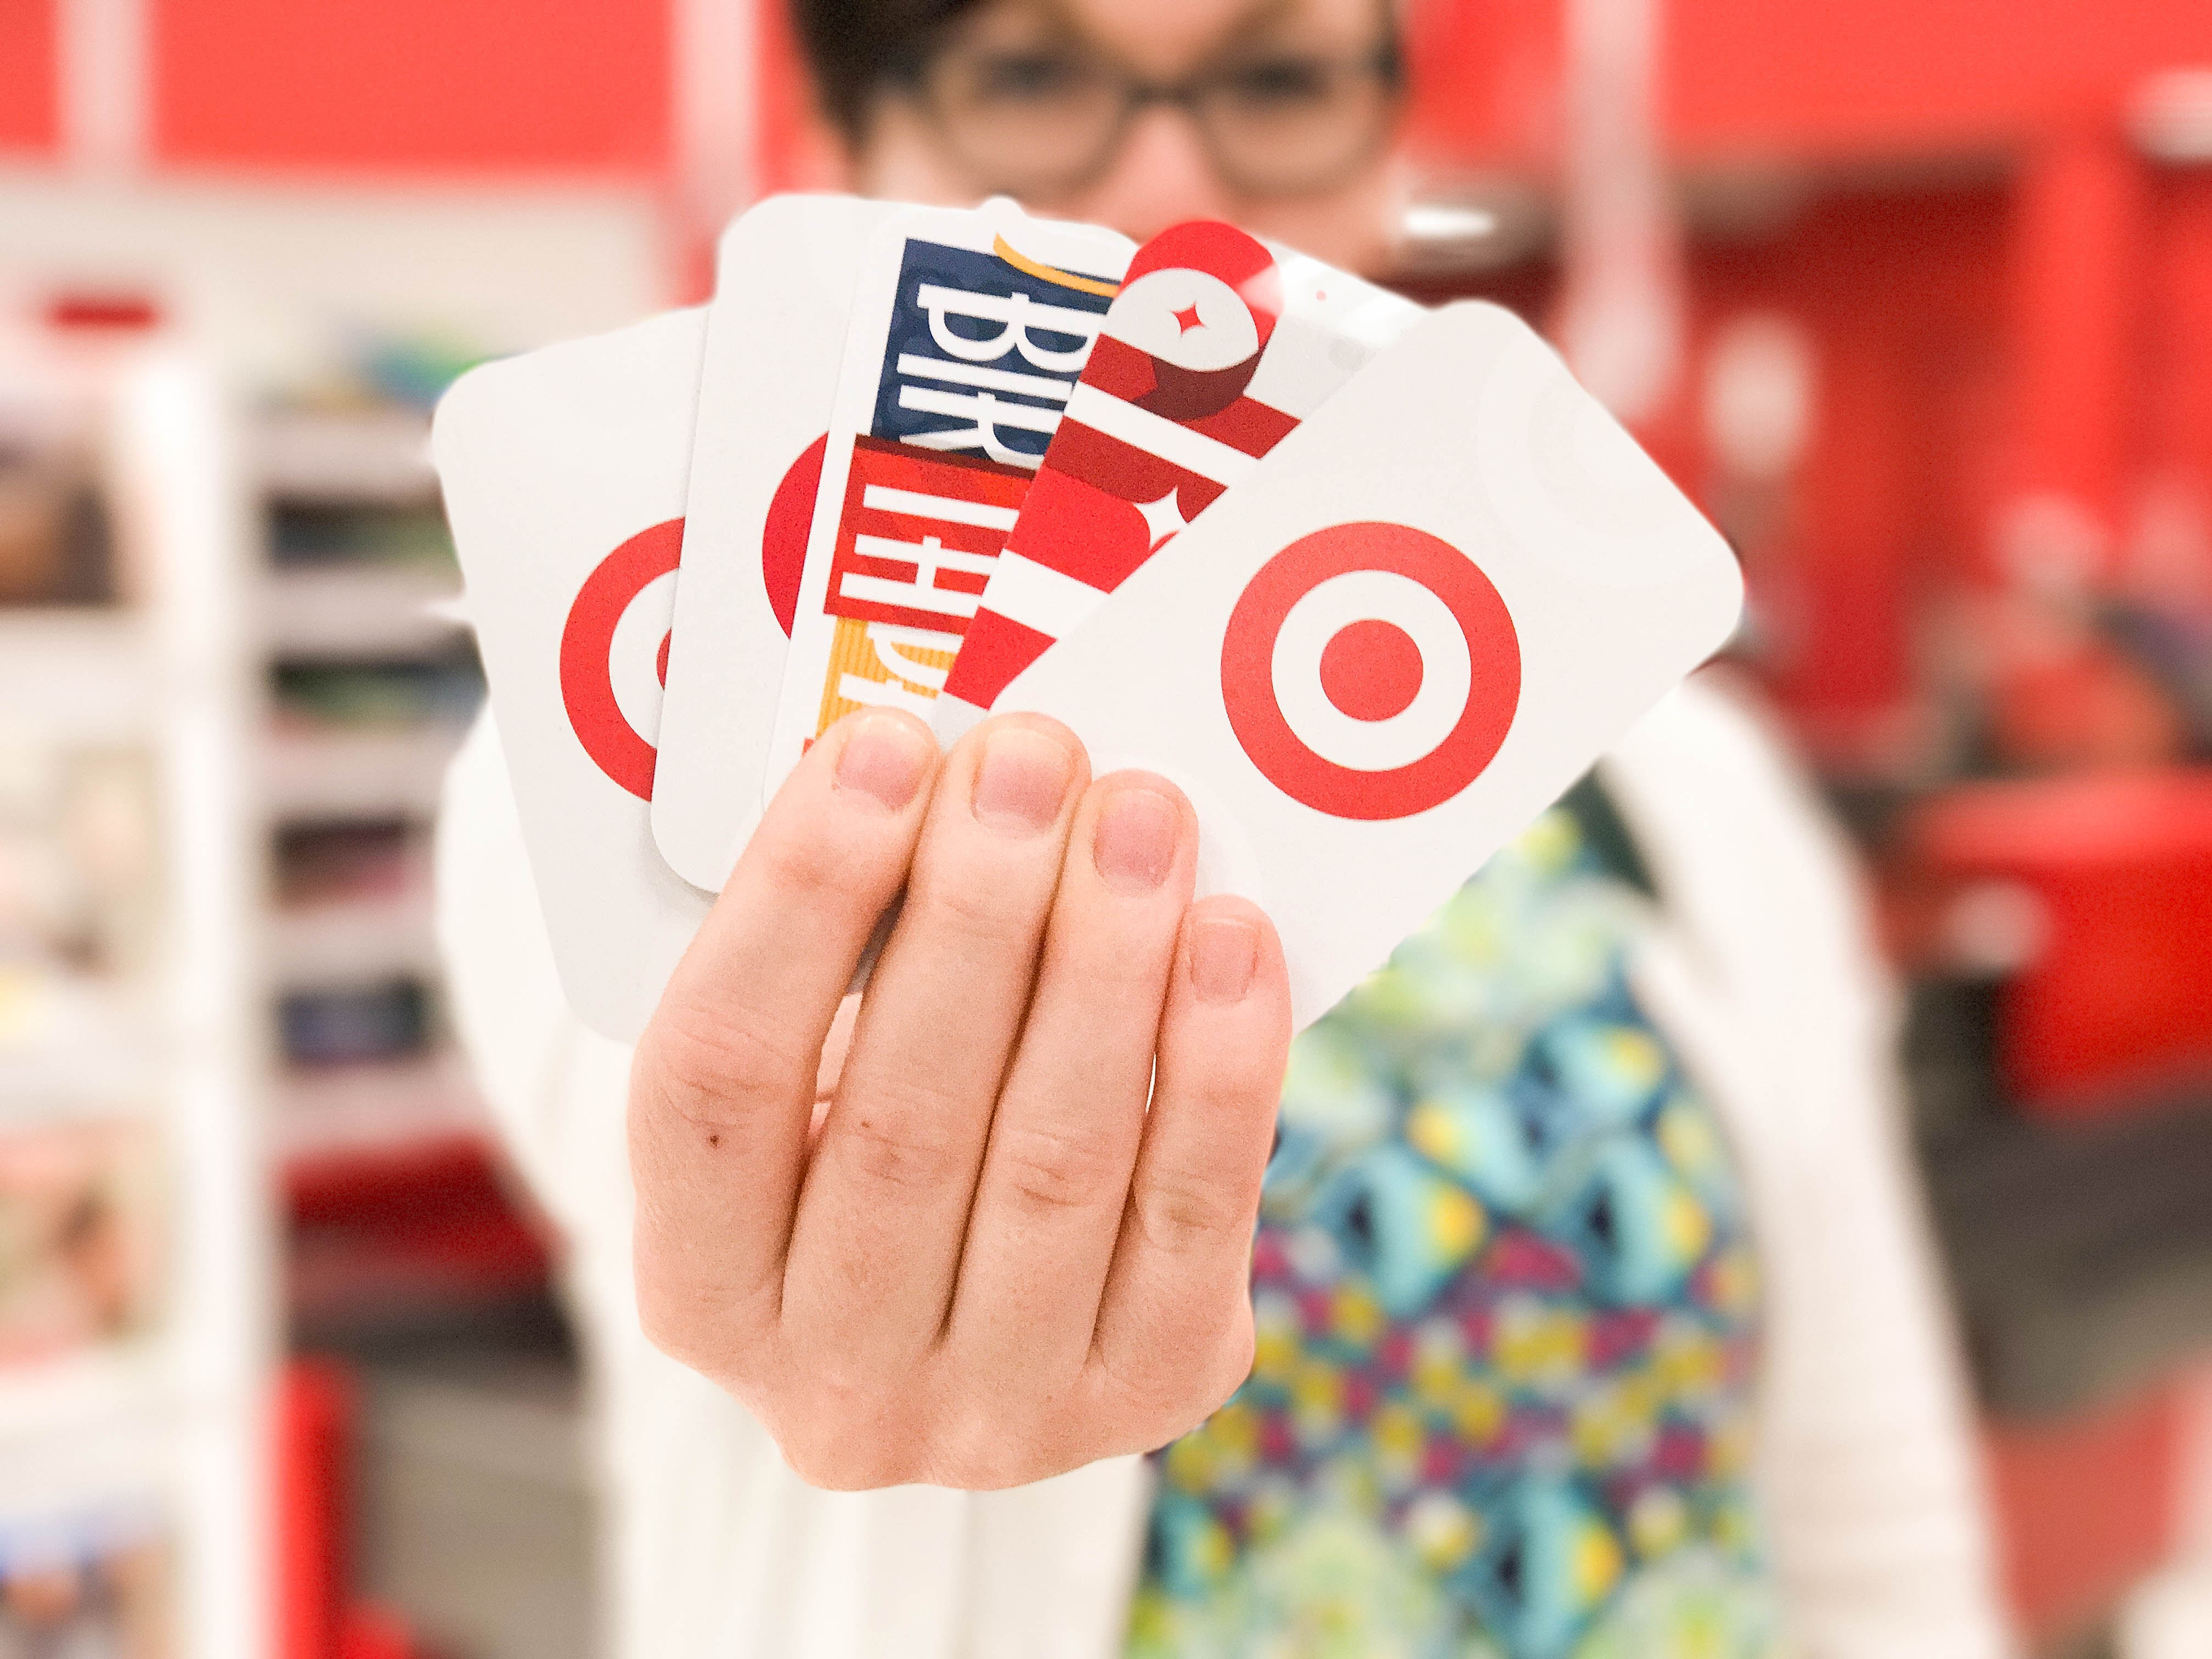 c053f61d 8 Best Ways to Get Free Target Gift Cards - The Krazy Coupon Lady